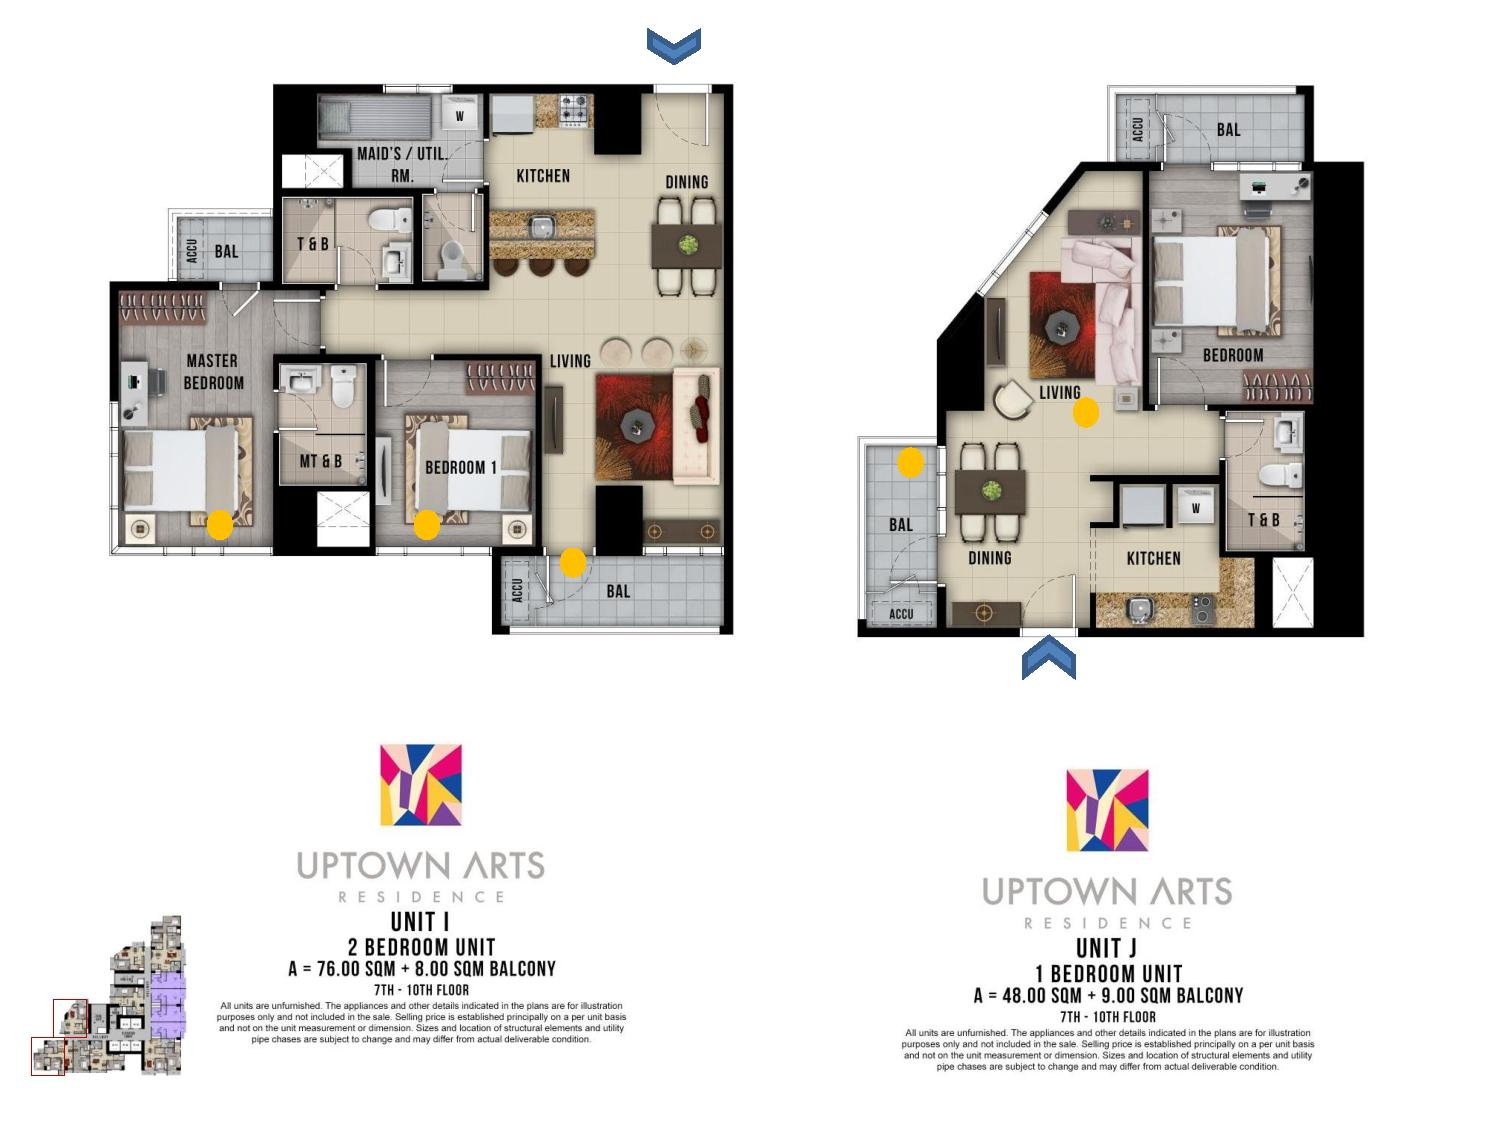 1br 2br unit layout Uptown Arts Residence  Preselling Condo For Sale in Bonifacio Global City BGC